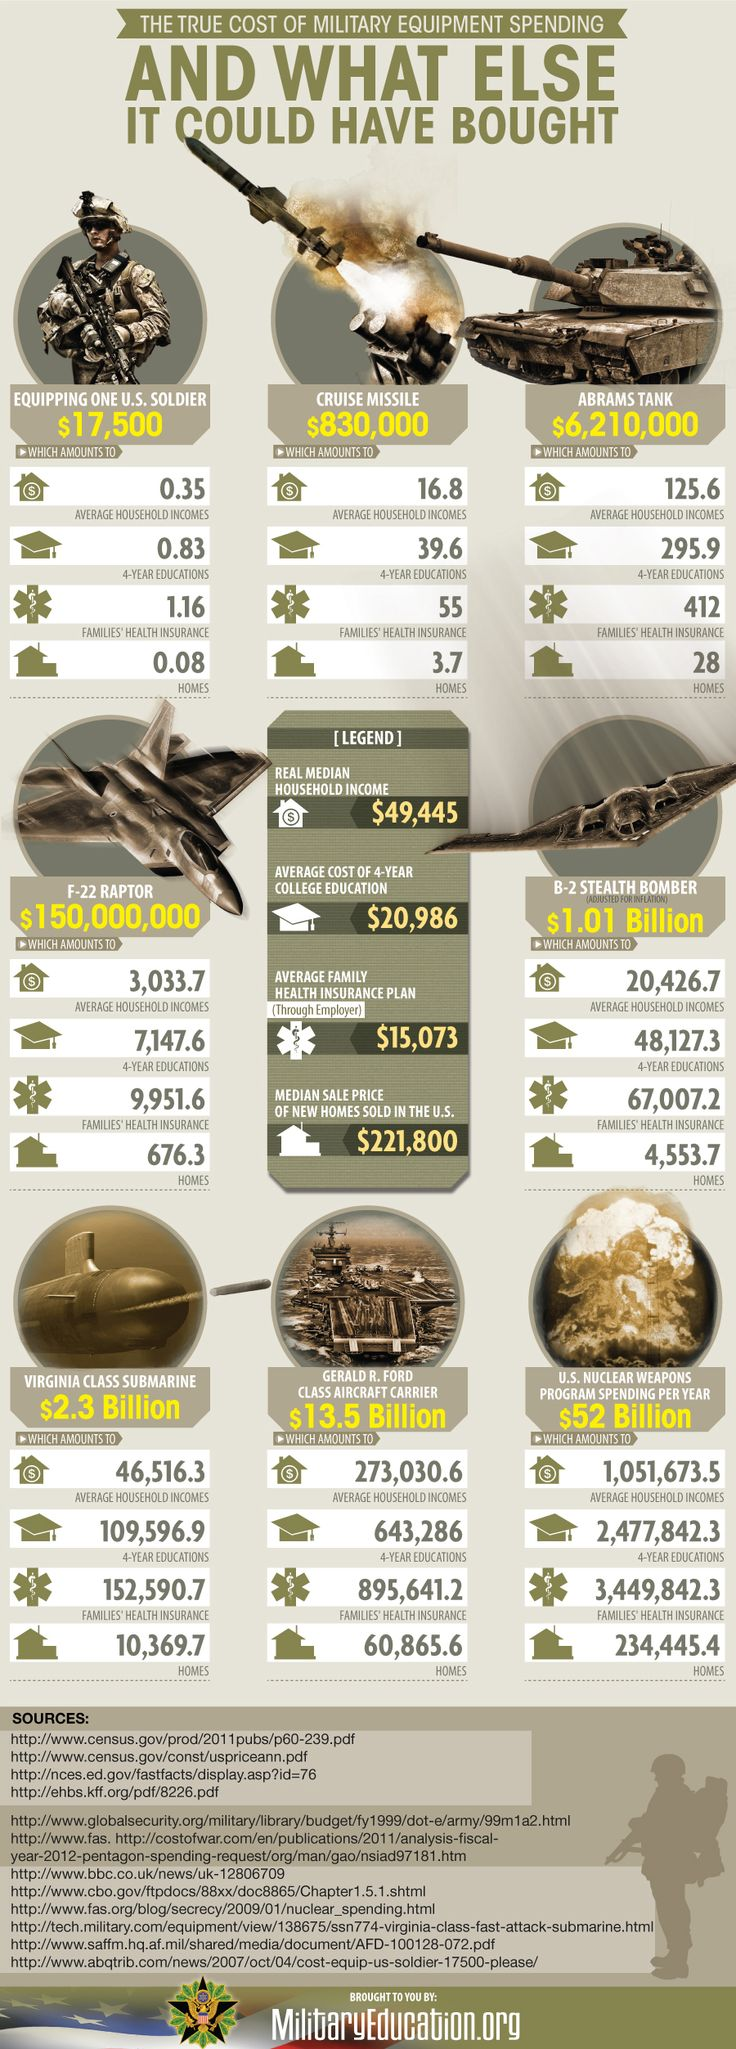 military spending. What else do you think the money could've been spent on?